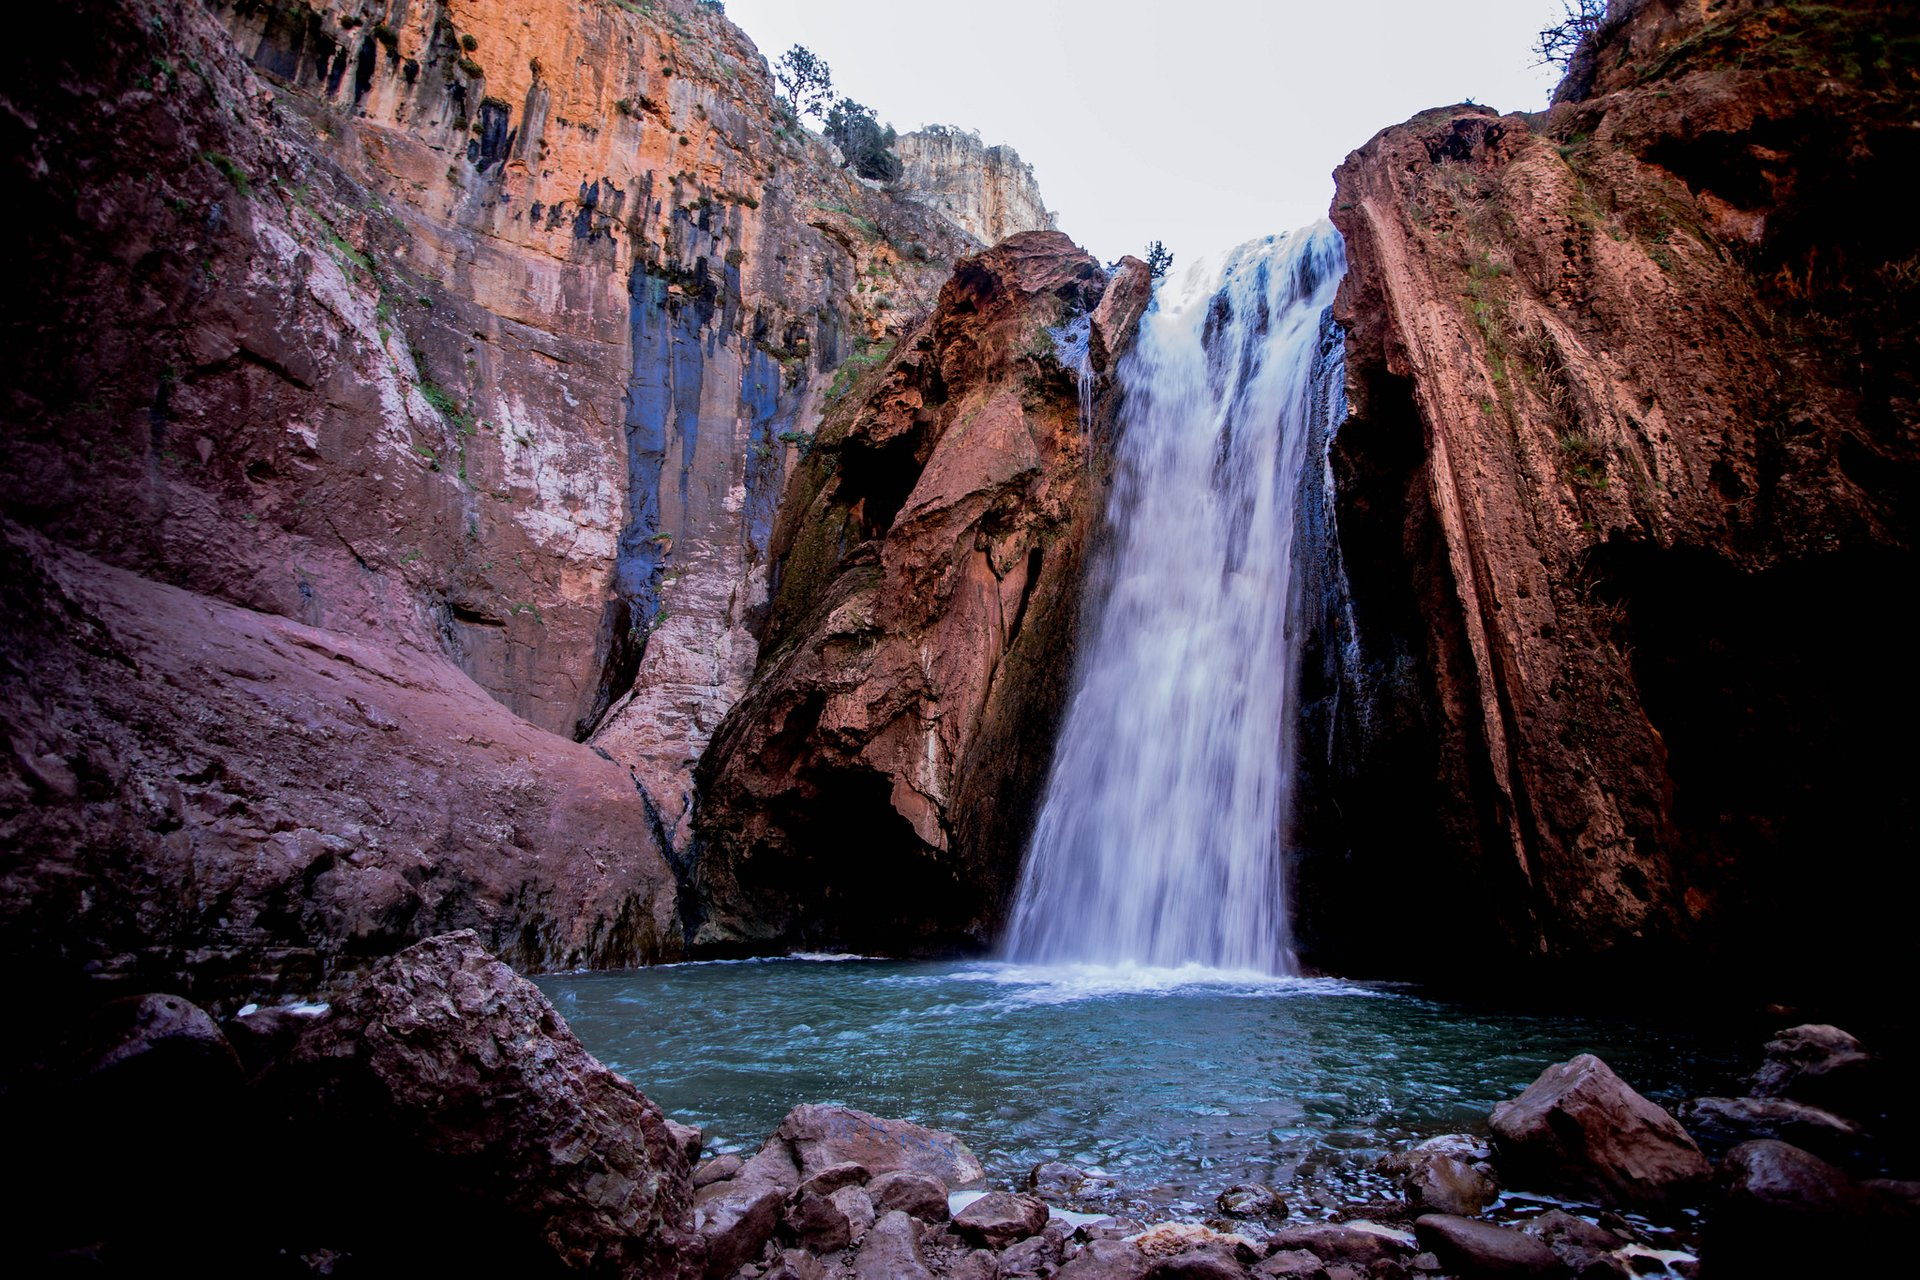 Winter Waterfalls in Morocco - Best Time